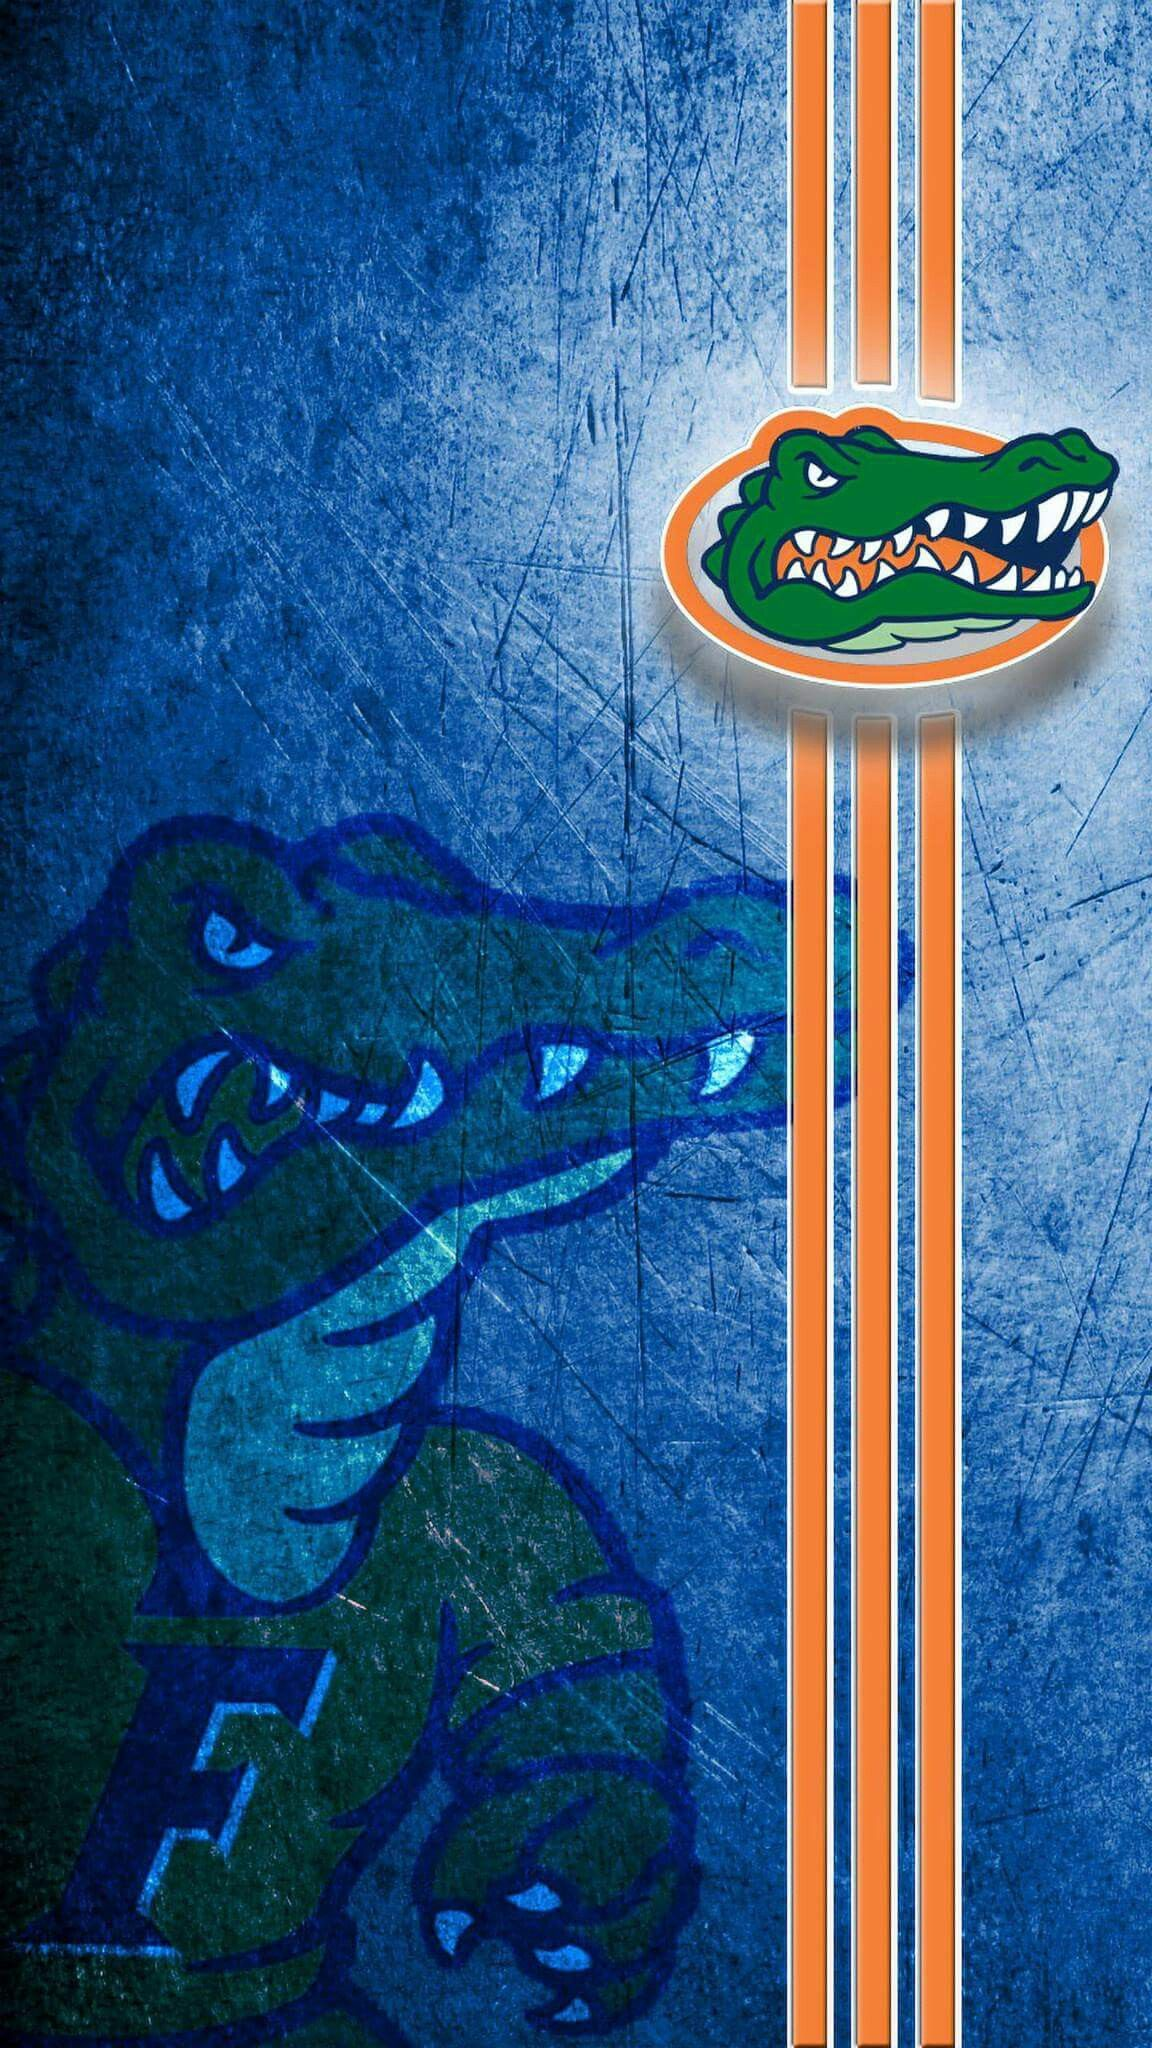 Florida gators image by ★⋰⋱★Chevy Brown★⋰⋱★ on Wallpapers